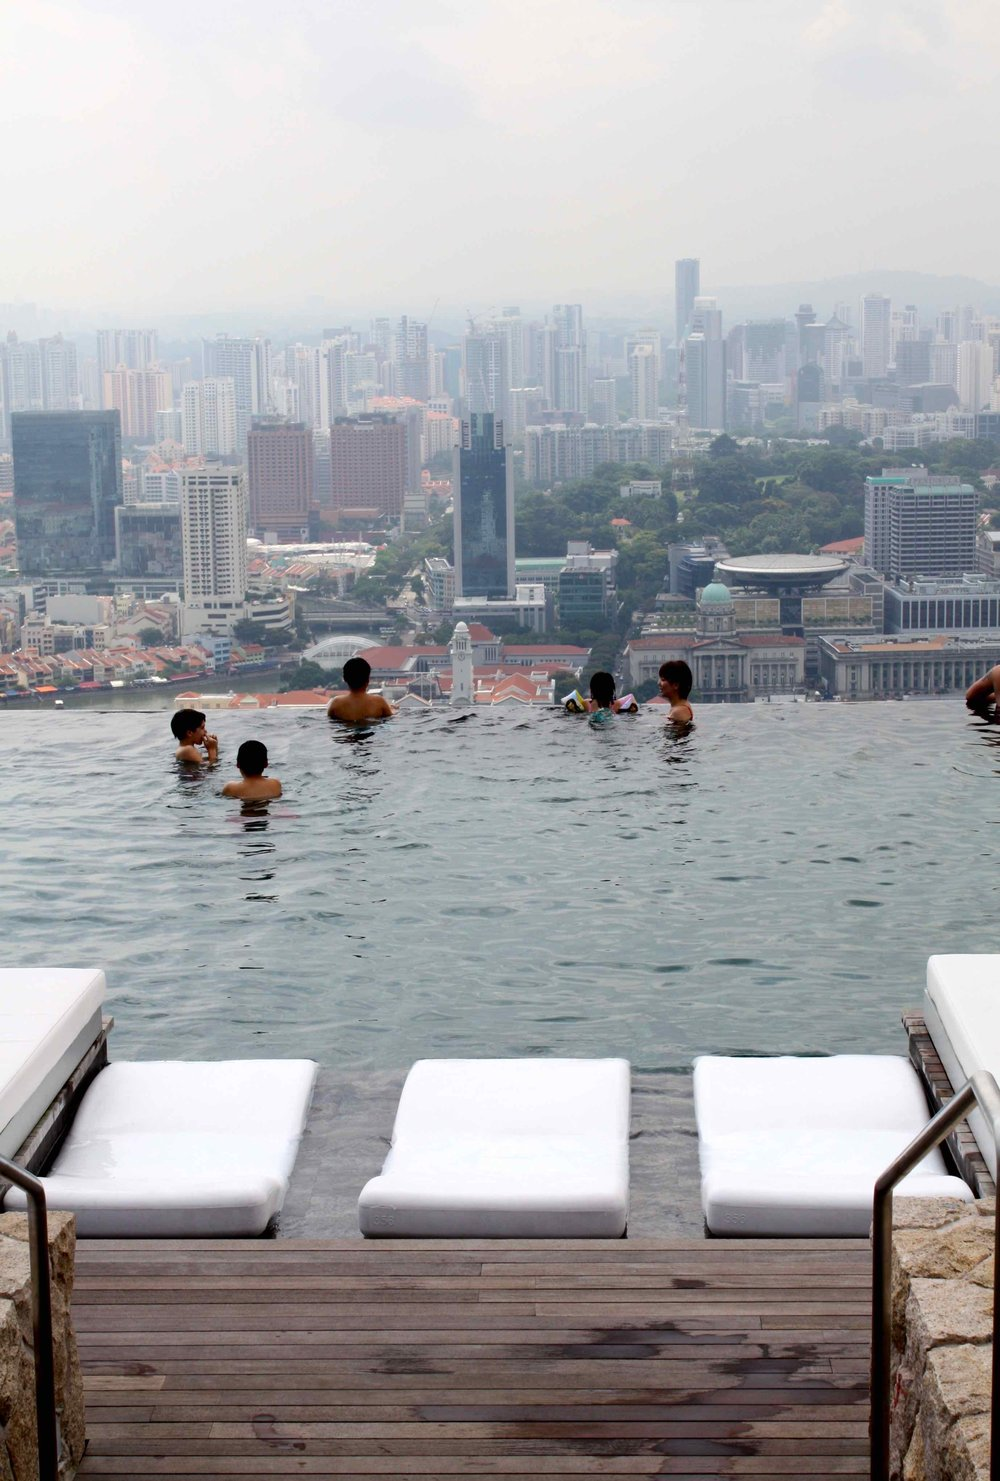 Pool, Marina Bay Sands, Singapore, 2011 ©